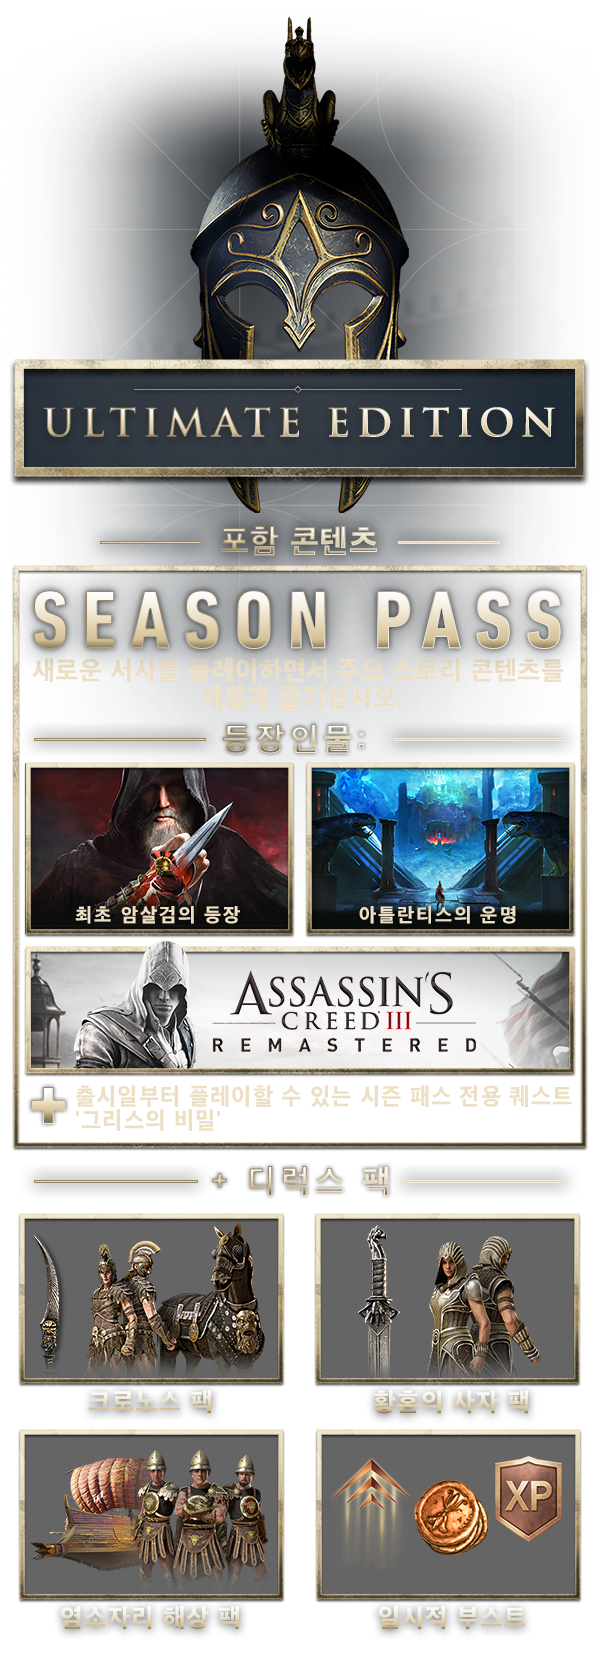 STEAM_ACO_ULTIMATE_EDITION_KOREAN.png?t=1540836192